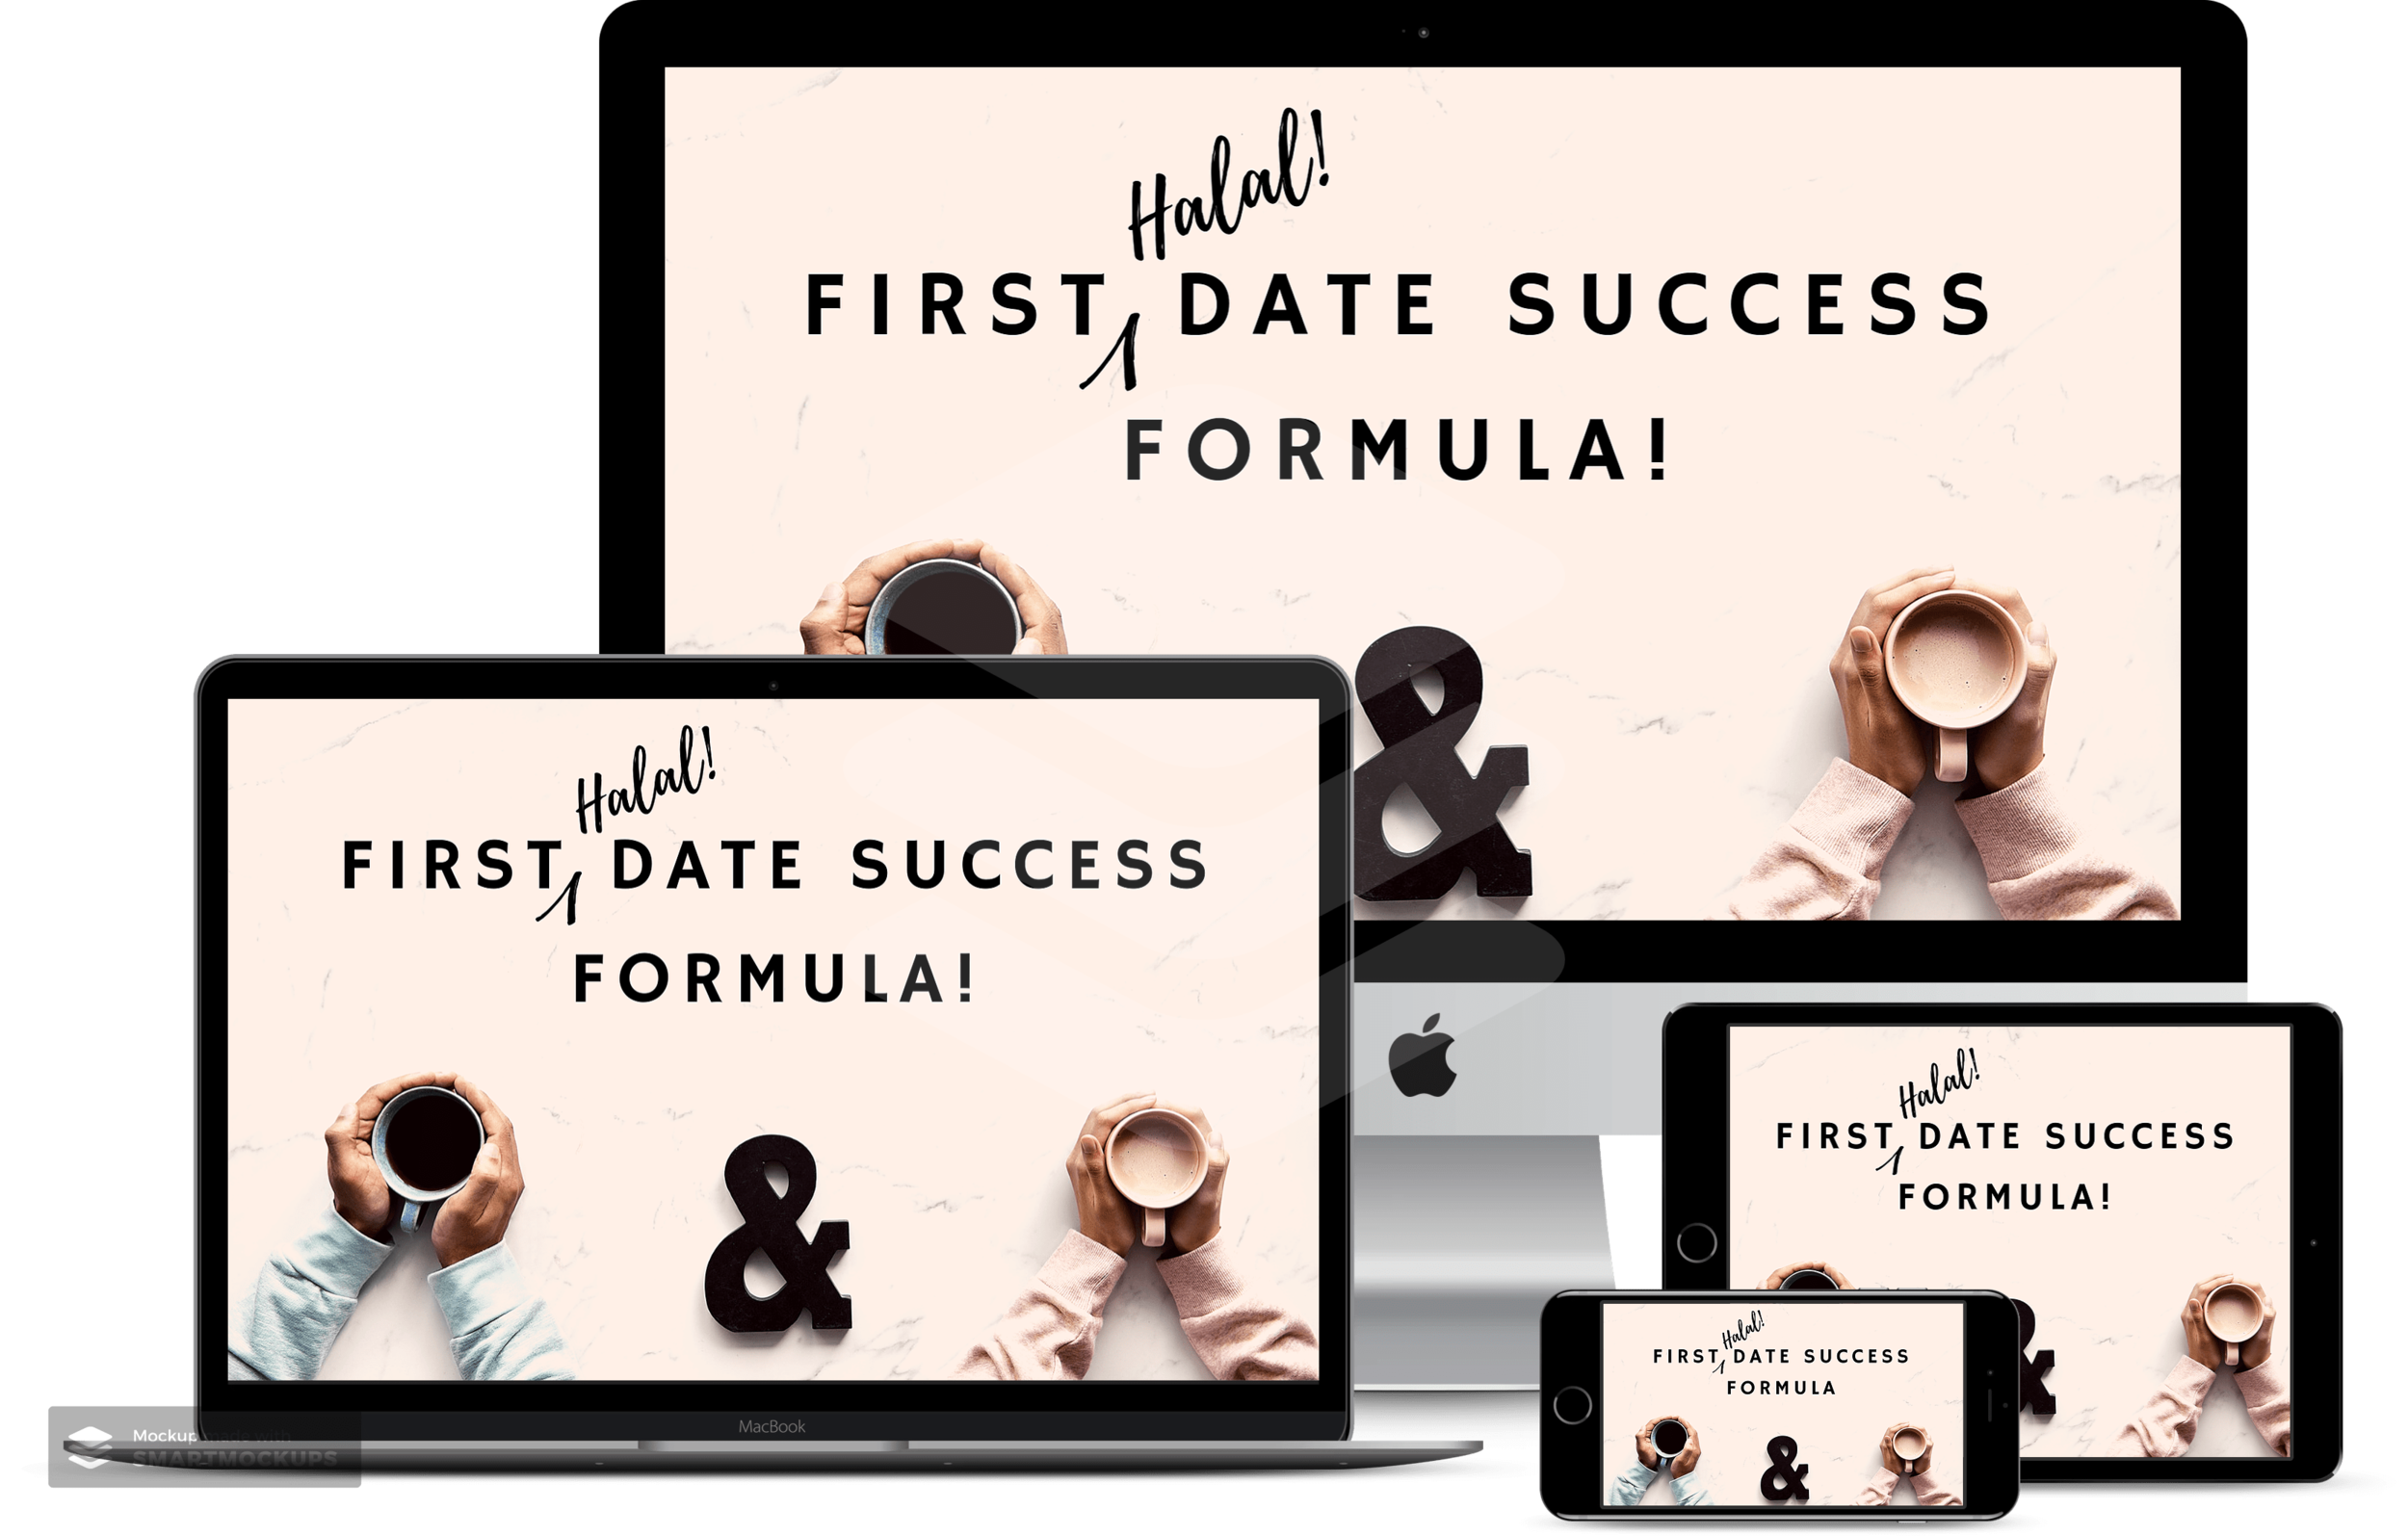 A great place to start! - If you're new to the world of singles coaching, this is a great starter kit if you want to kickstart and inject new life into your search. The First Halal Date Success Formula is designed to get you off the loop of uninspiring first dates and start making better connections right from day one.CLICK HERE to find out more